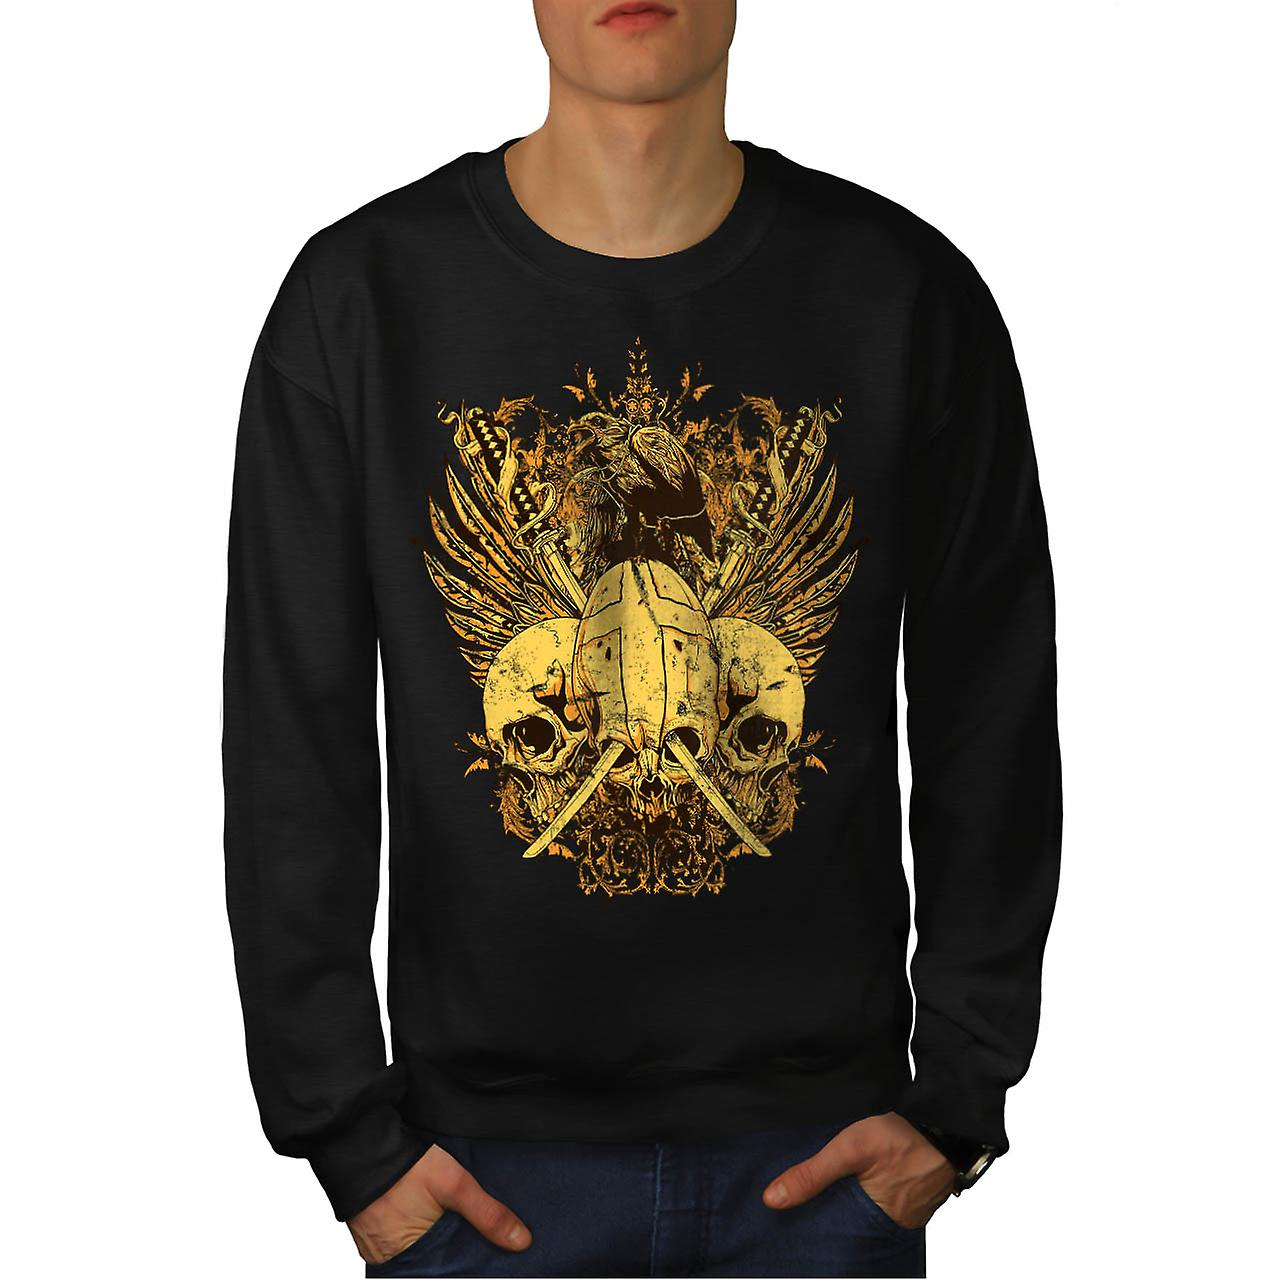 Skull Sword Fight Axe Death Bird Men Black Sweatshirt | Wellcoda